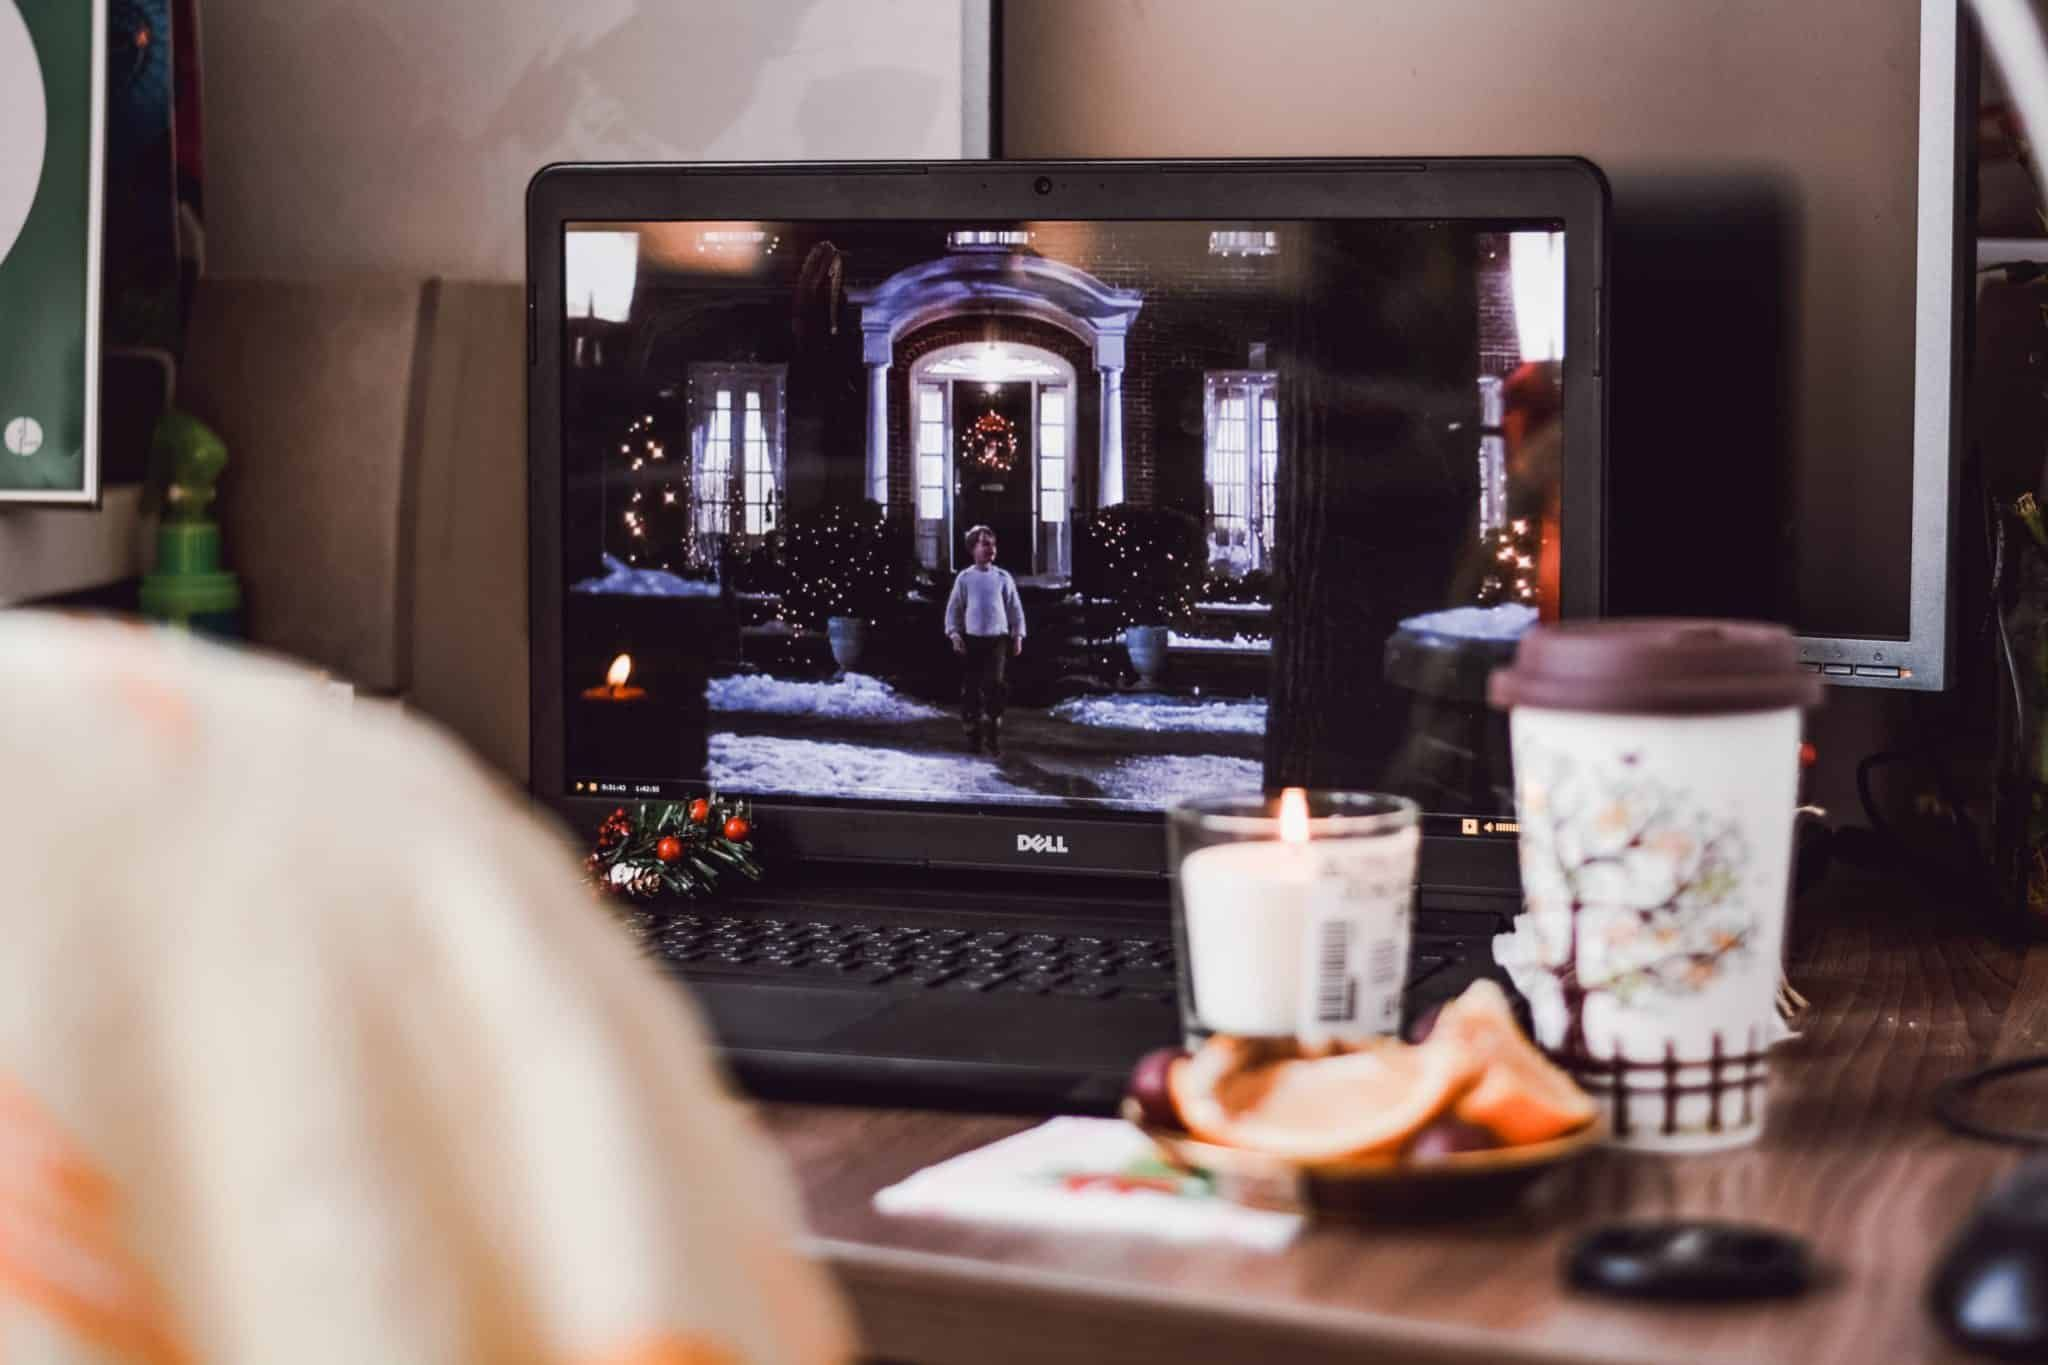 21 Simple Ways to Get Paid to Watch Videos Online in 2019